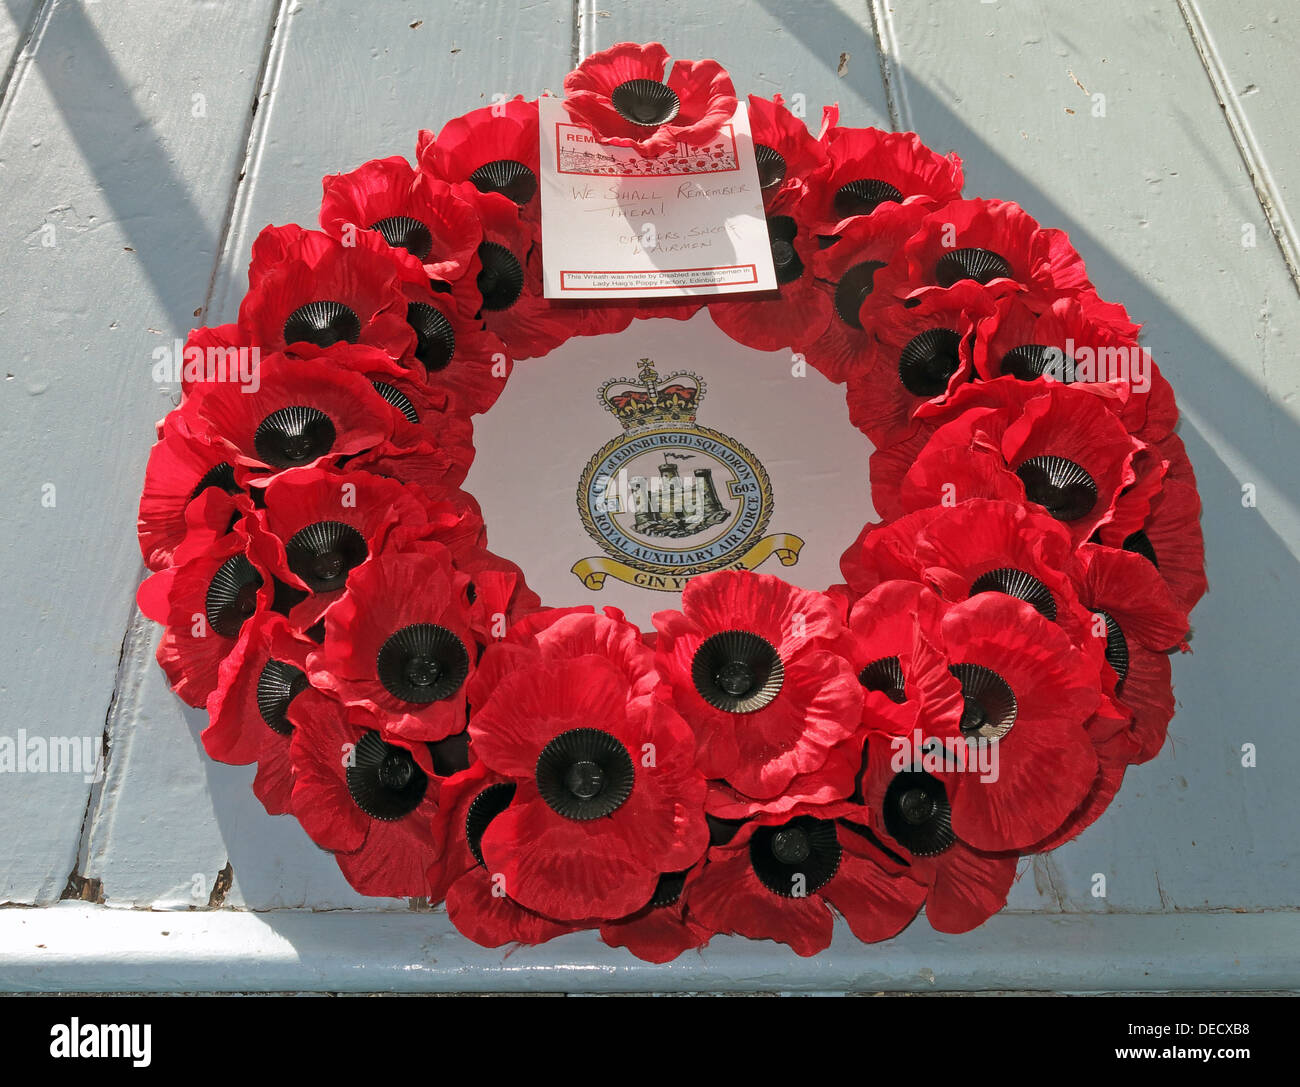 remembrance,we,shall,remember,them,Air,Force,City,of,Edinburgh,Squadron,603,at,Canongate,Kirk,church,chapel,November,2013,2012,Day,or,Armistice,11/11,war,hero,heroes,dead,armed,forces,soldier,soldiers,In,Flanders,Fields,red,blood,spilled,spilt,two,minutes,of,silence,minute,Royal,British,Legion,gotonysmith haig fund association for ex-servicemen exservicemen ex servicemen,Buy Pictures of,Buy Images Of